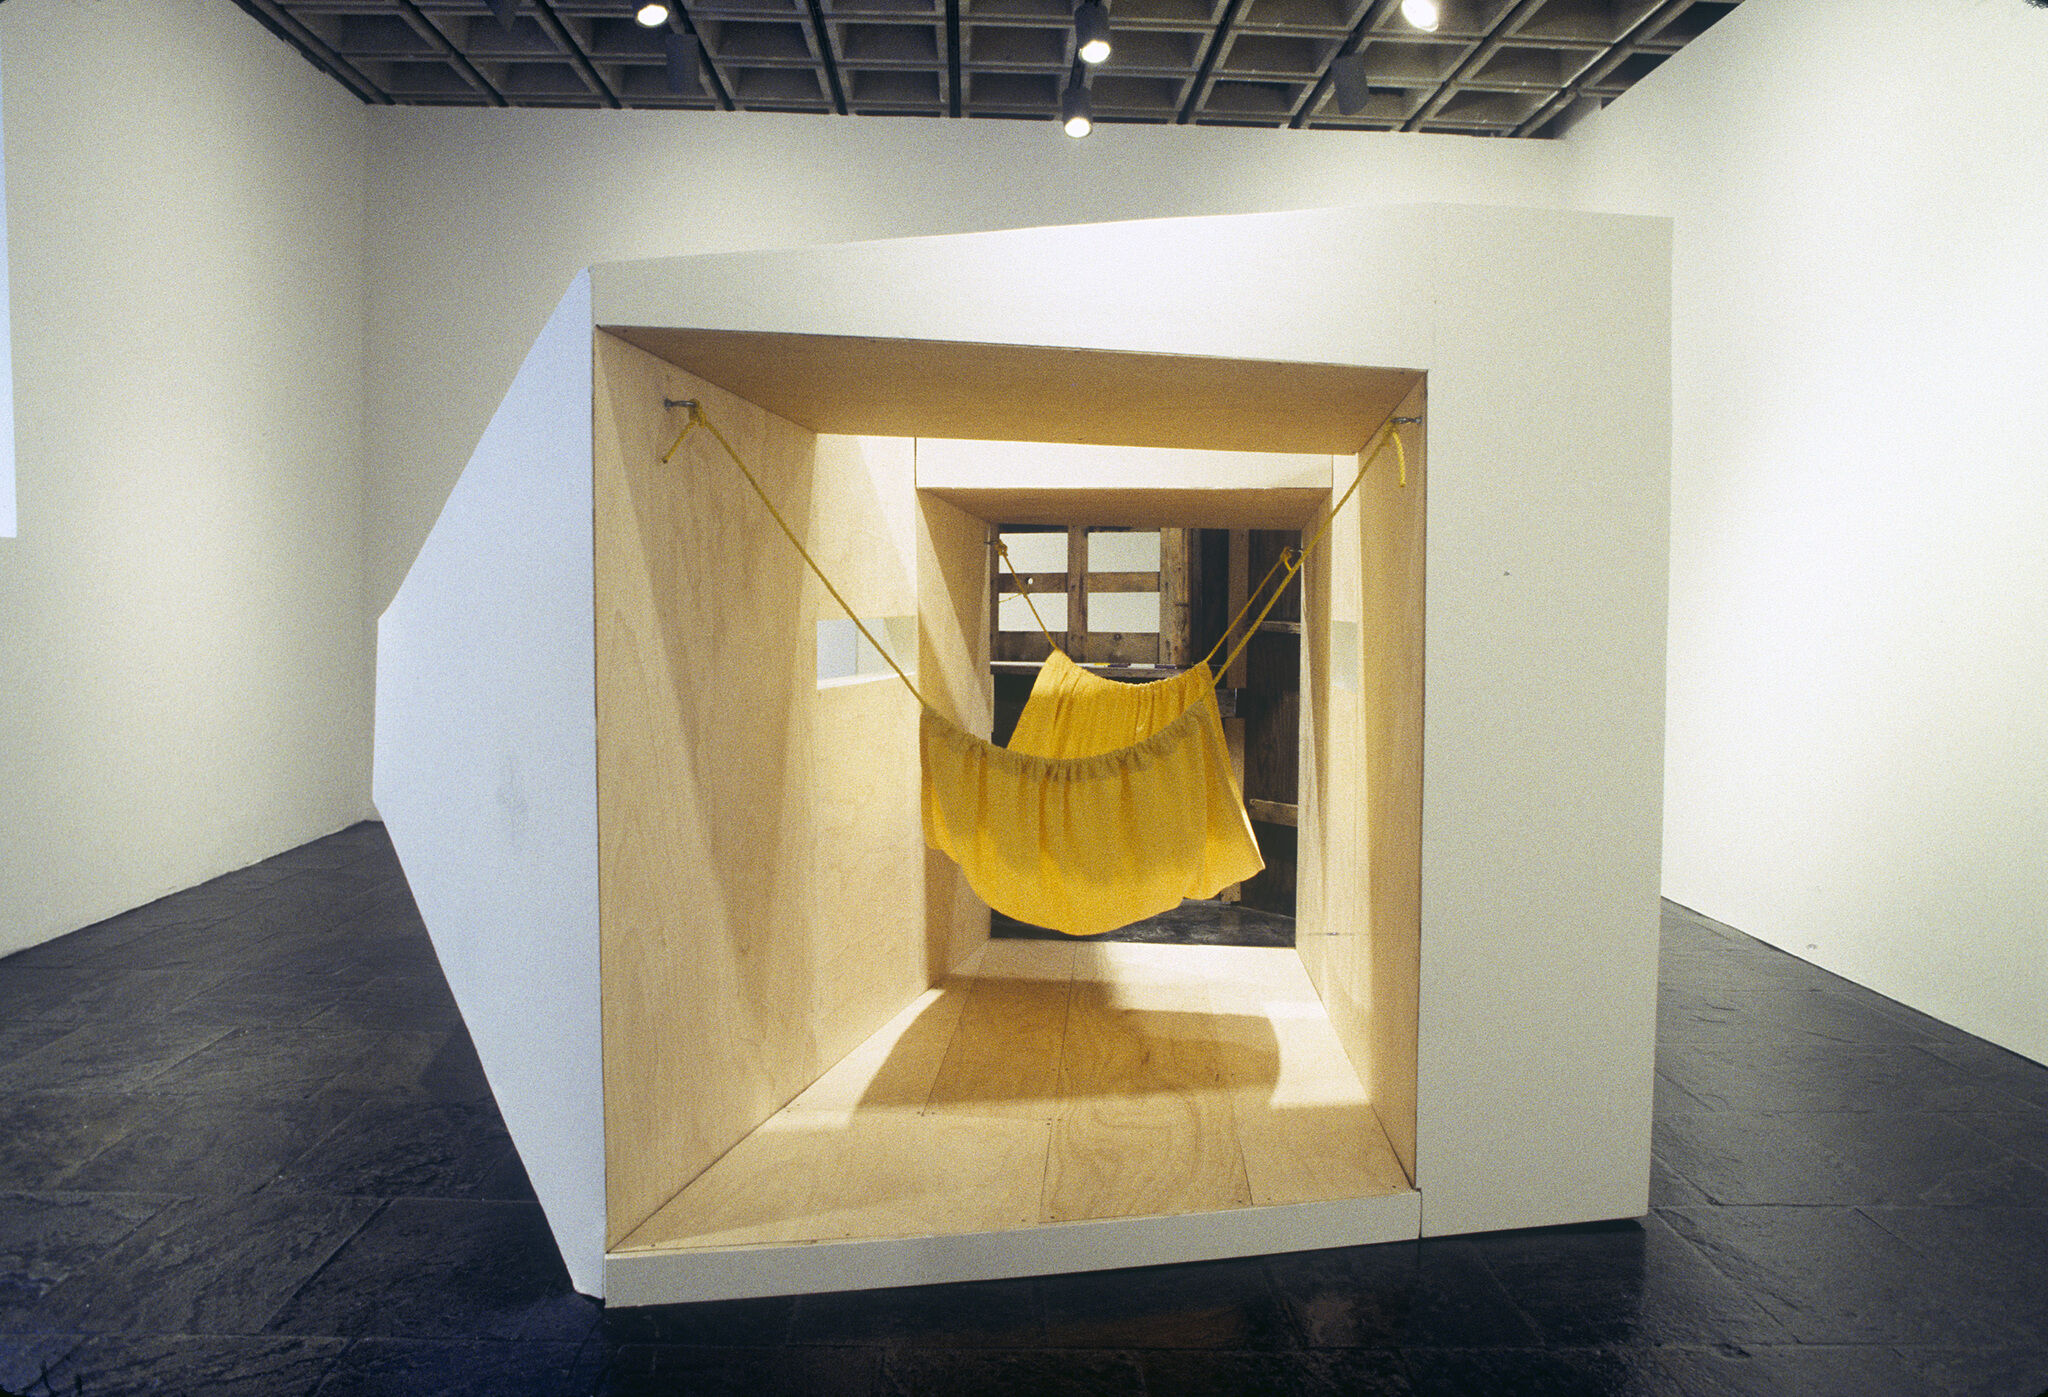 A large white and wooden sculpture with a yellow hammock inside.